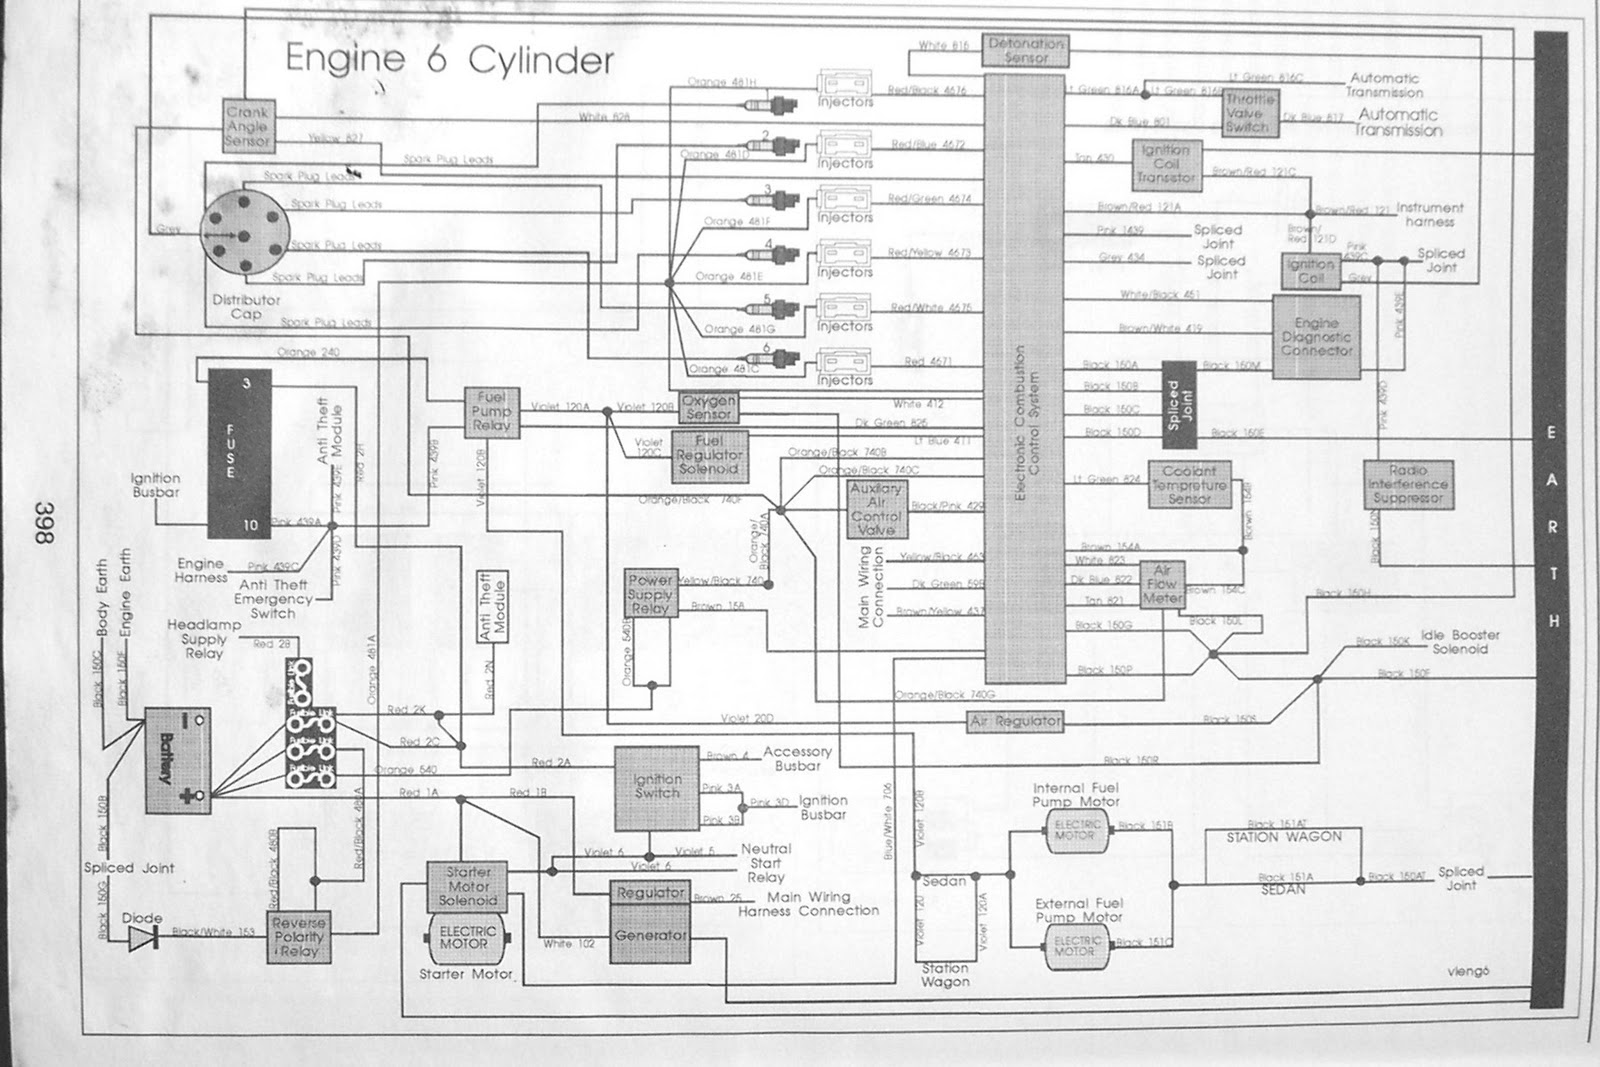 14b vt commodore wiring diagram efcaviation com vz commodore wiring diagram at n-0.co